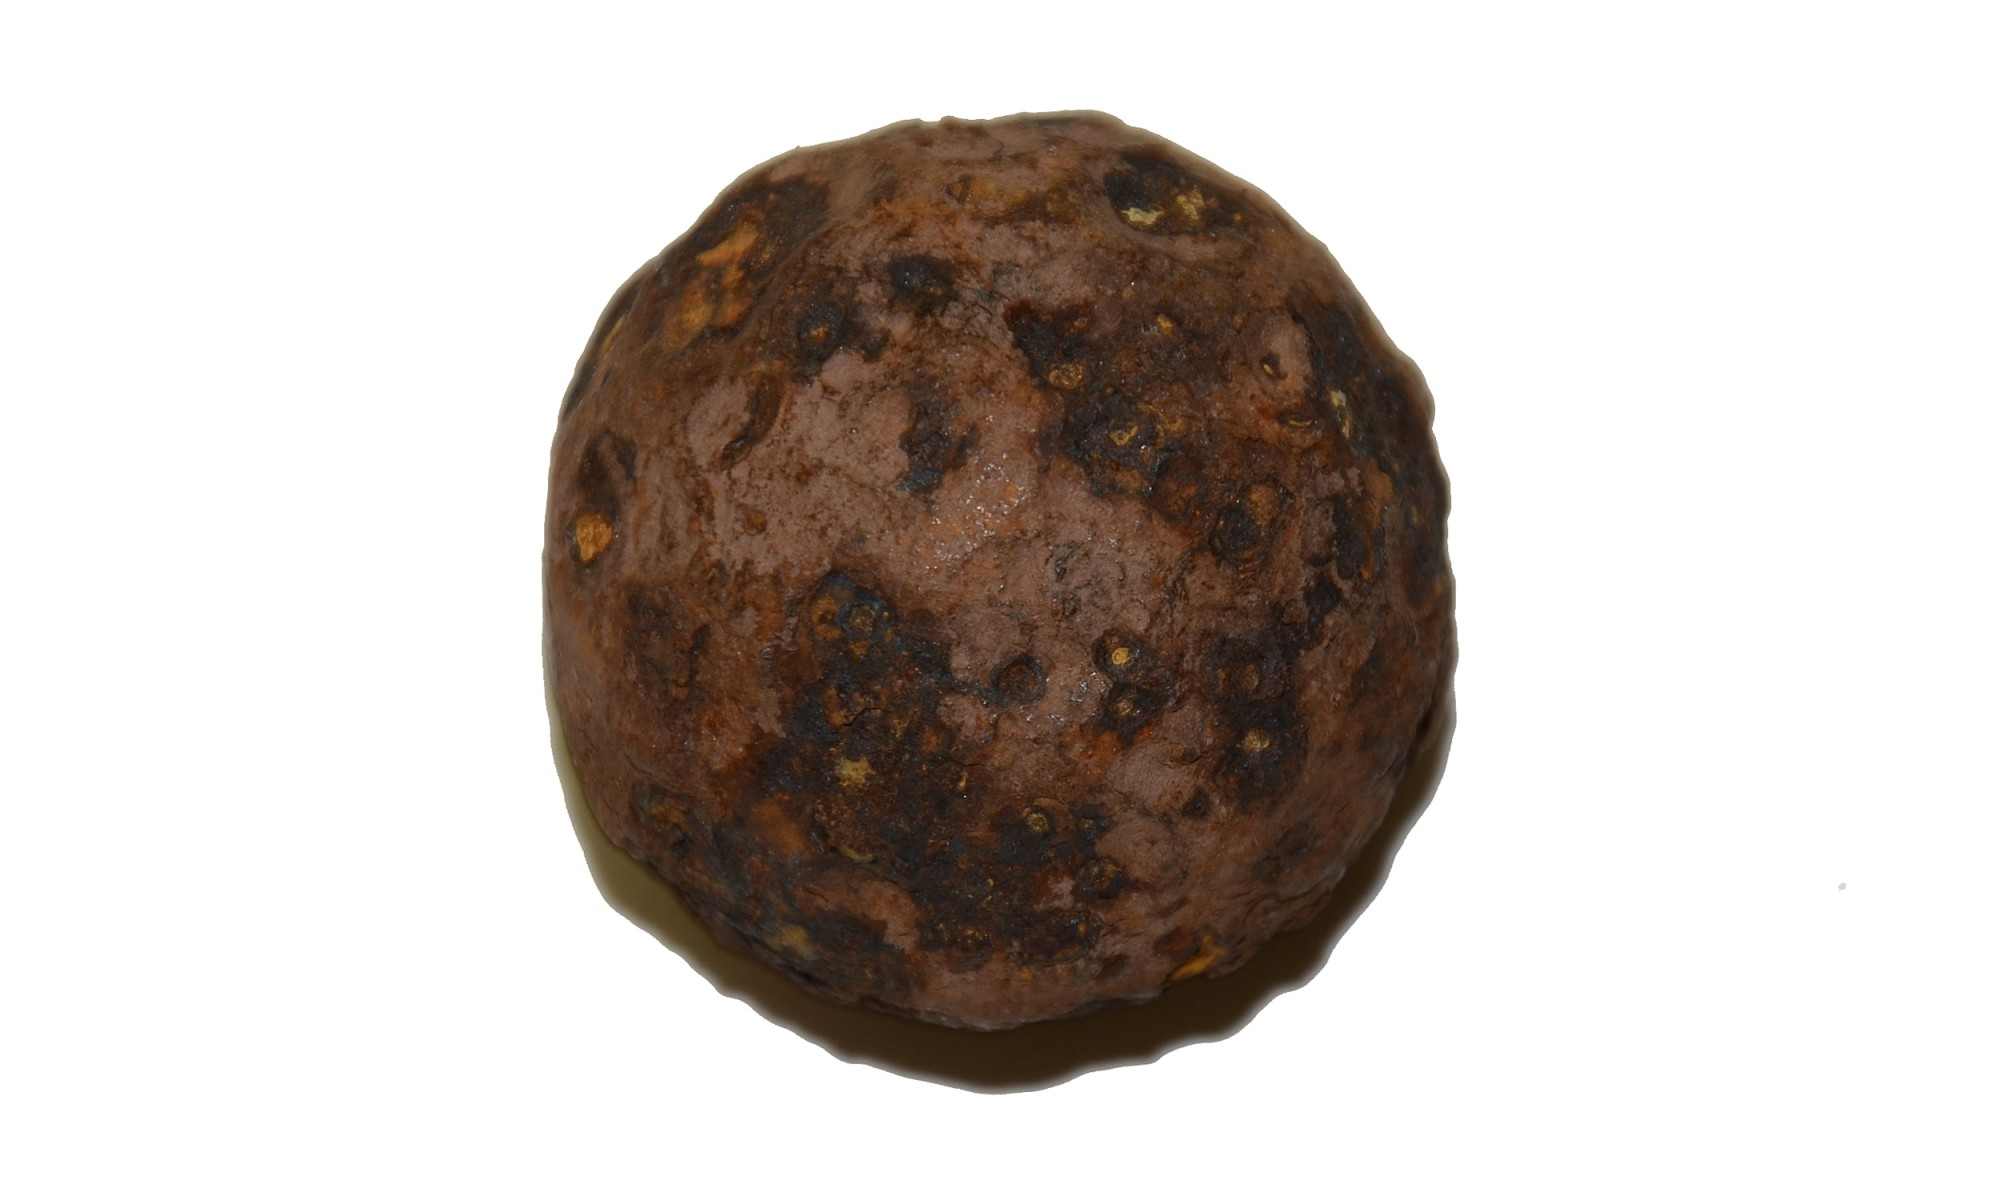 US/CS 12 LB CANISTER BALL RECOVERED AT GETTYSBURG